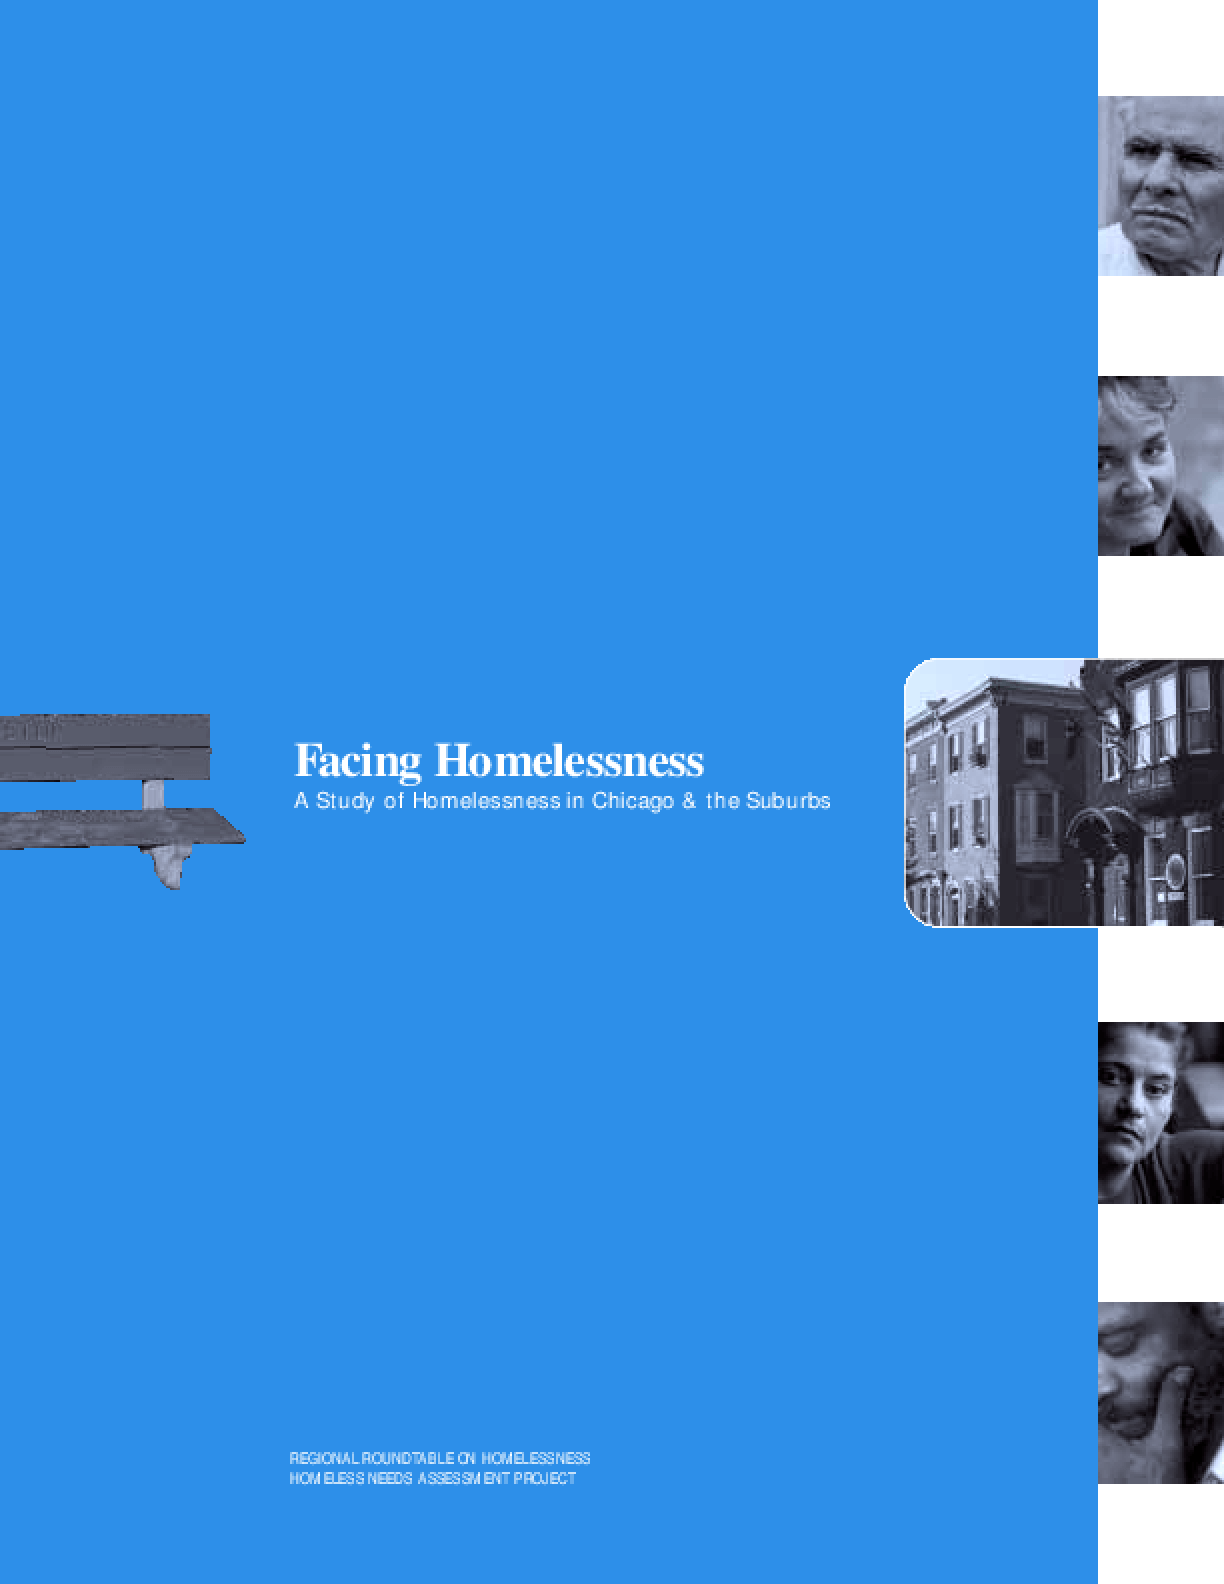 Facing Homelessness: A Study of Homelessness in Chicago and the Suburbs